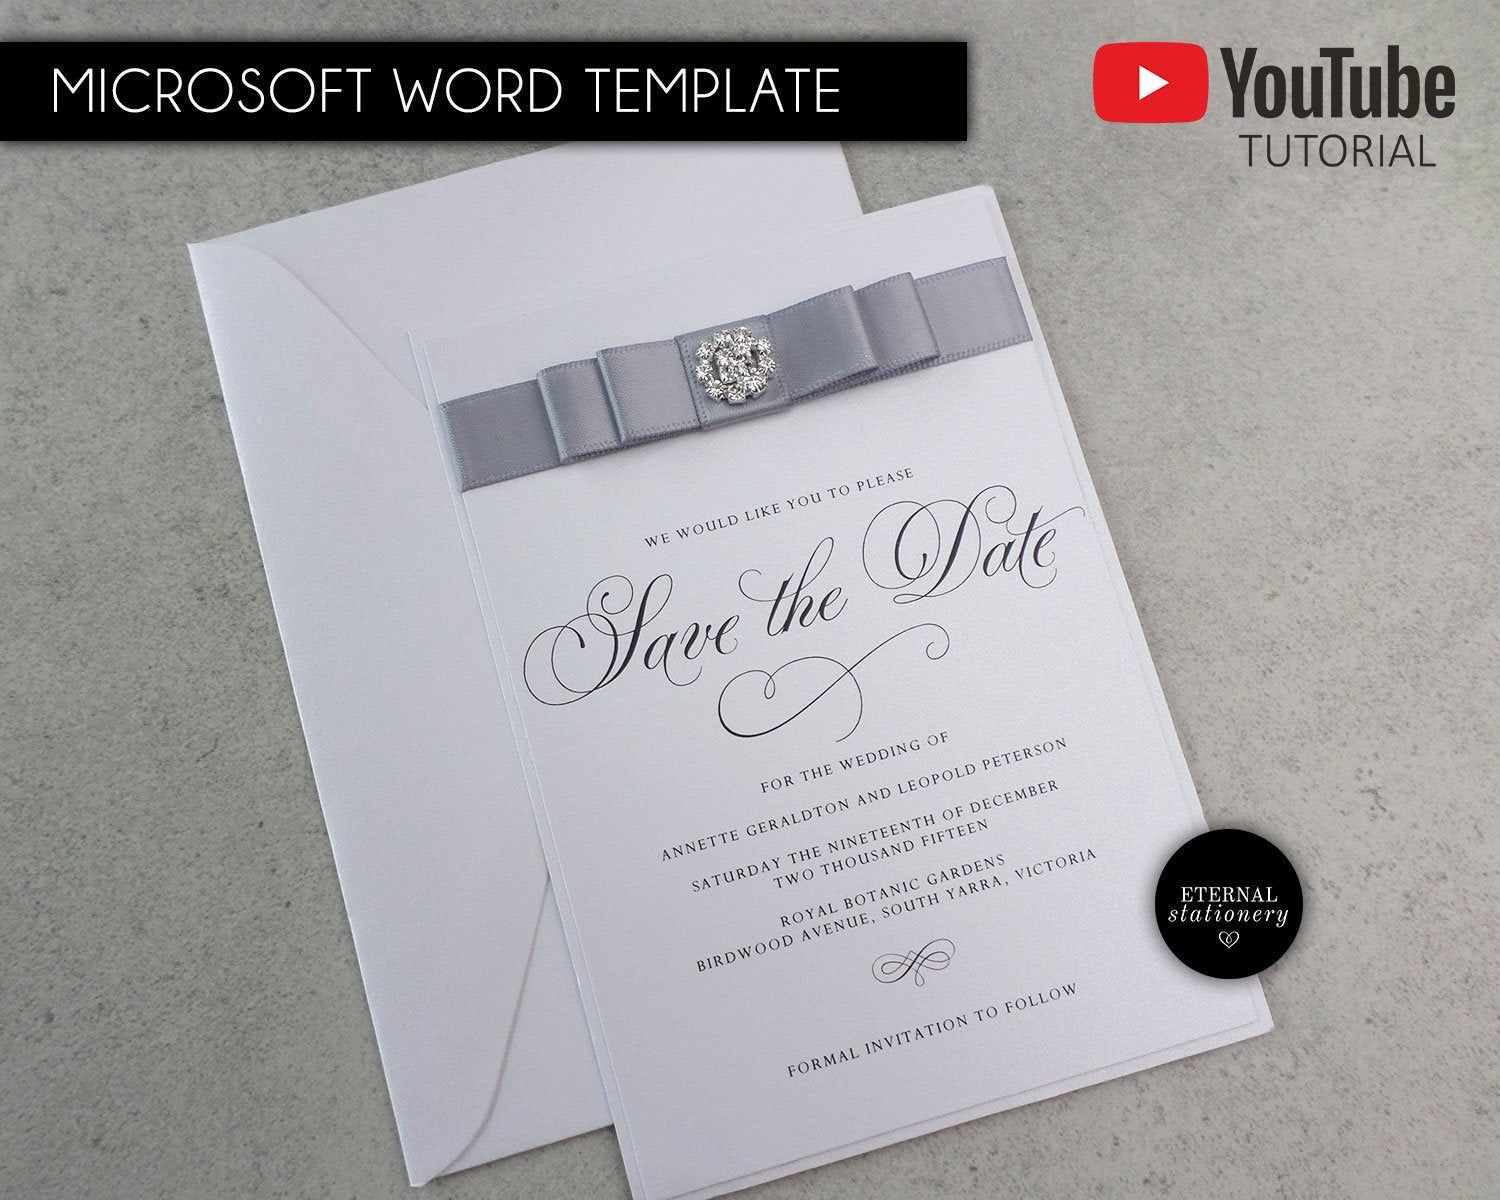 002 Unique Save The Date Word Template Idea  Free Birthday For Microsoft Postcard FlyerFull